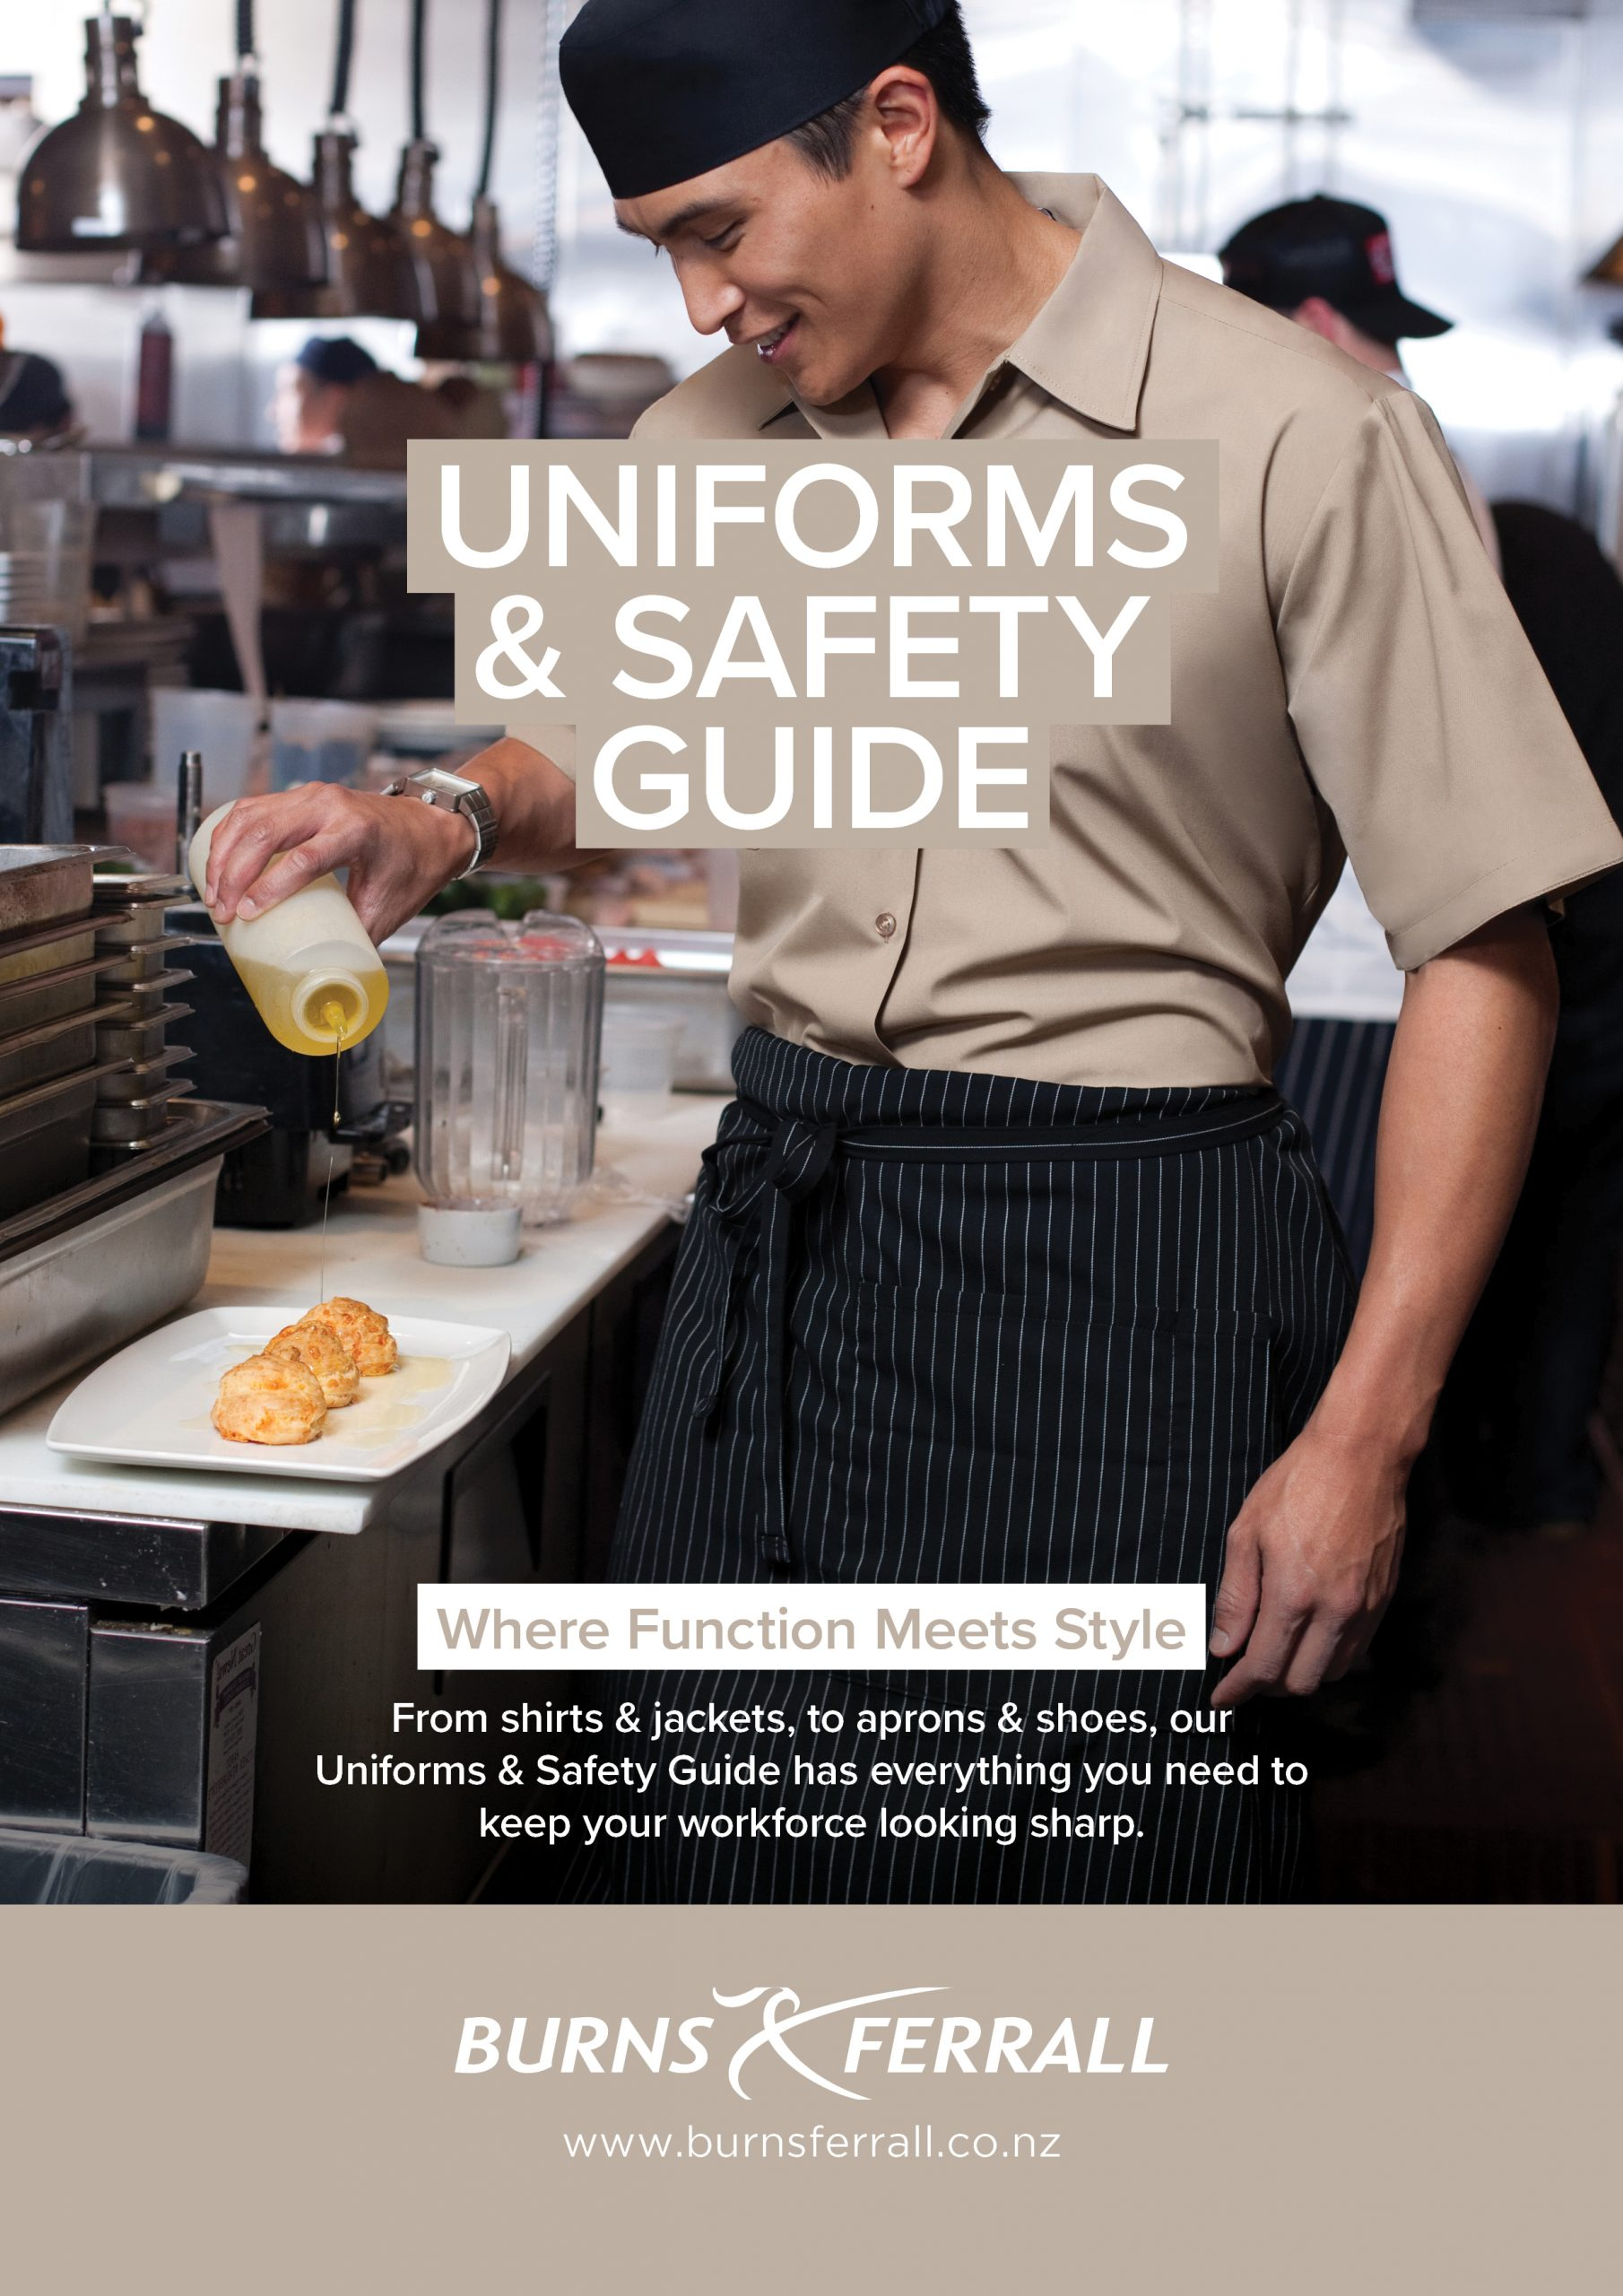 2004245CB_BK_Uniforms-Safety-Guide-Catalogue-2020_BF-scaled